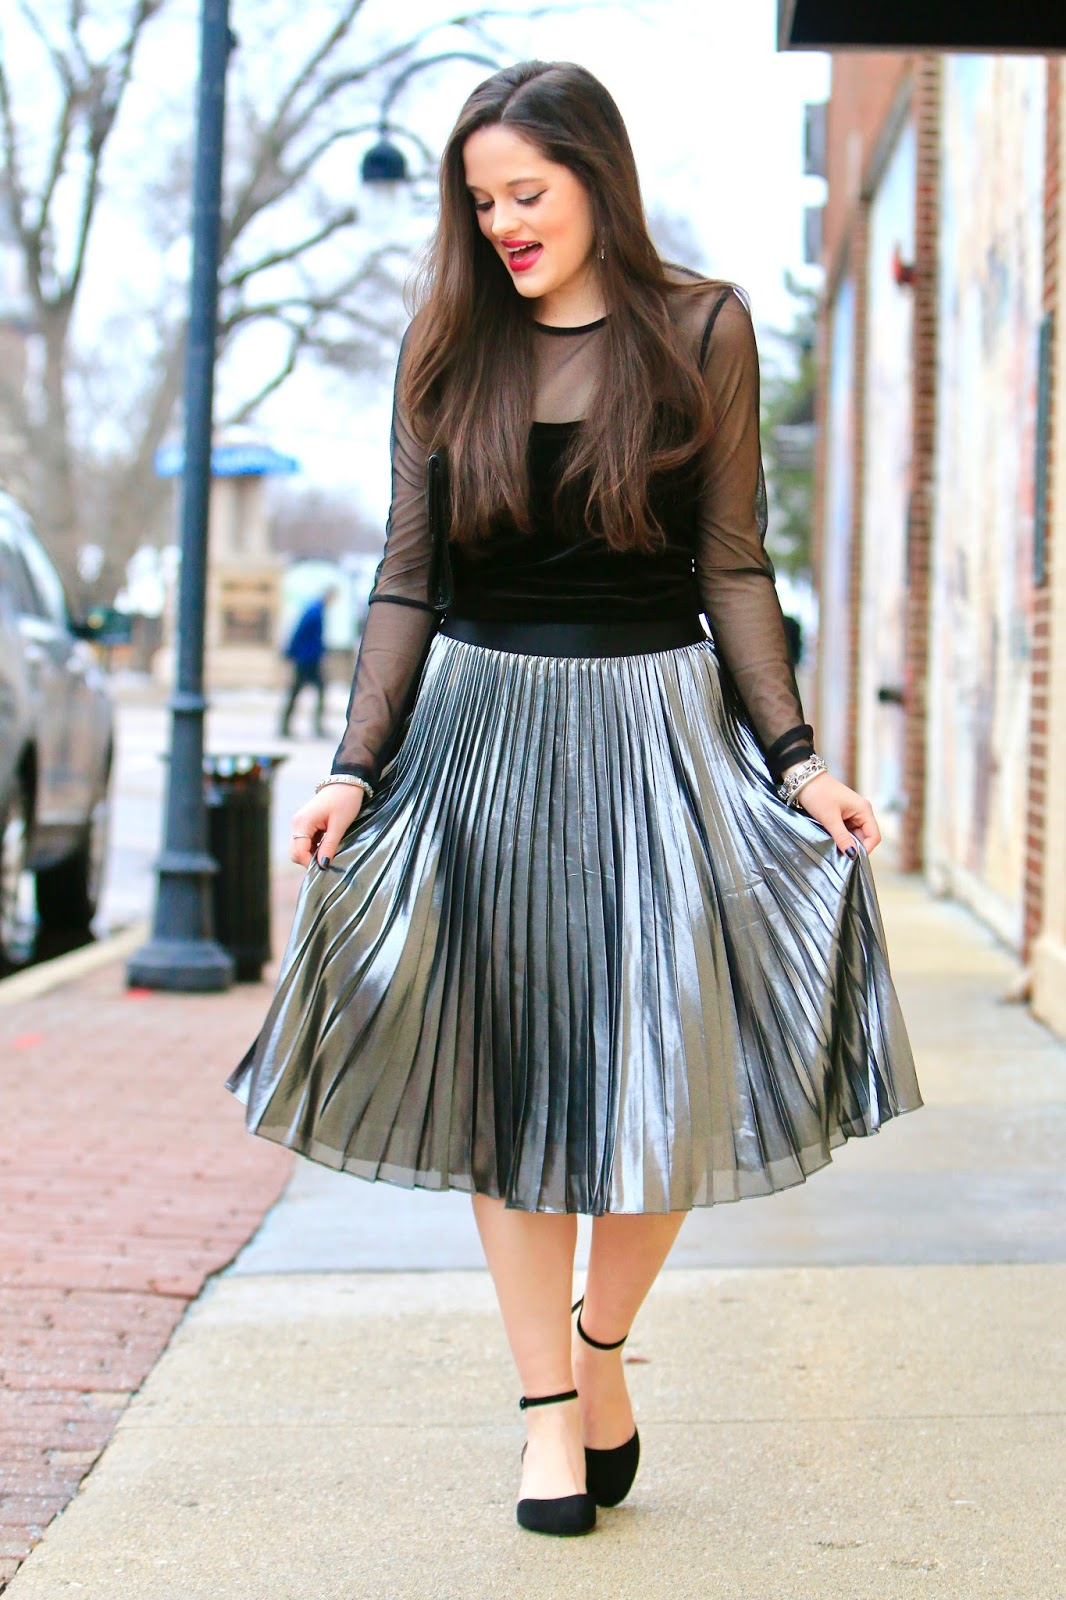 silver pleated skirt pics